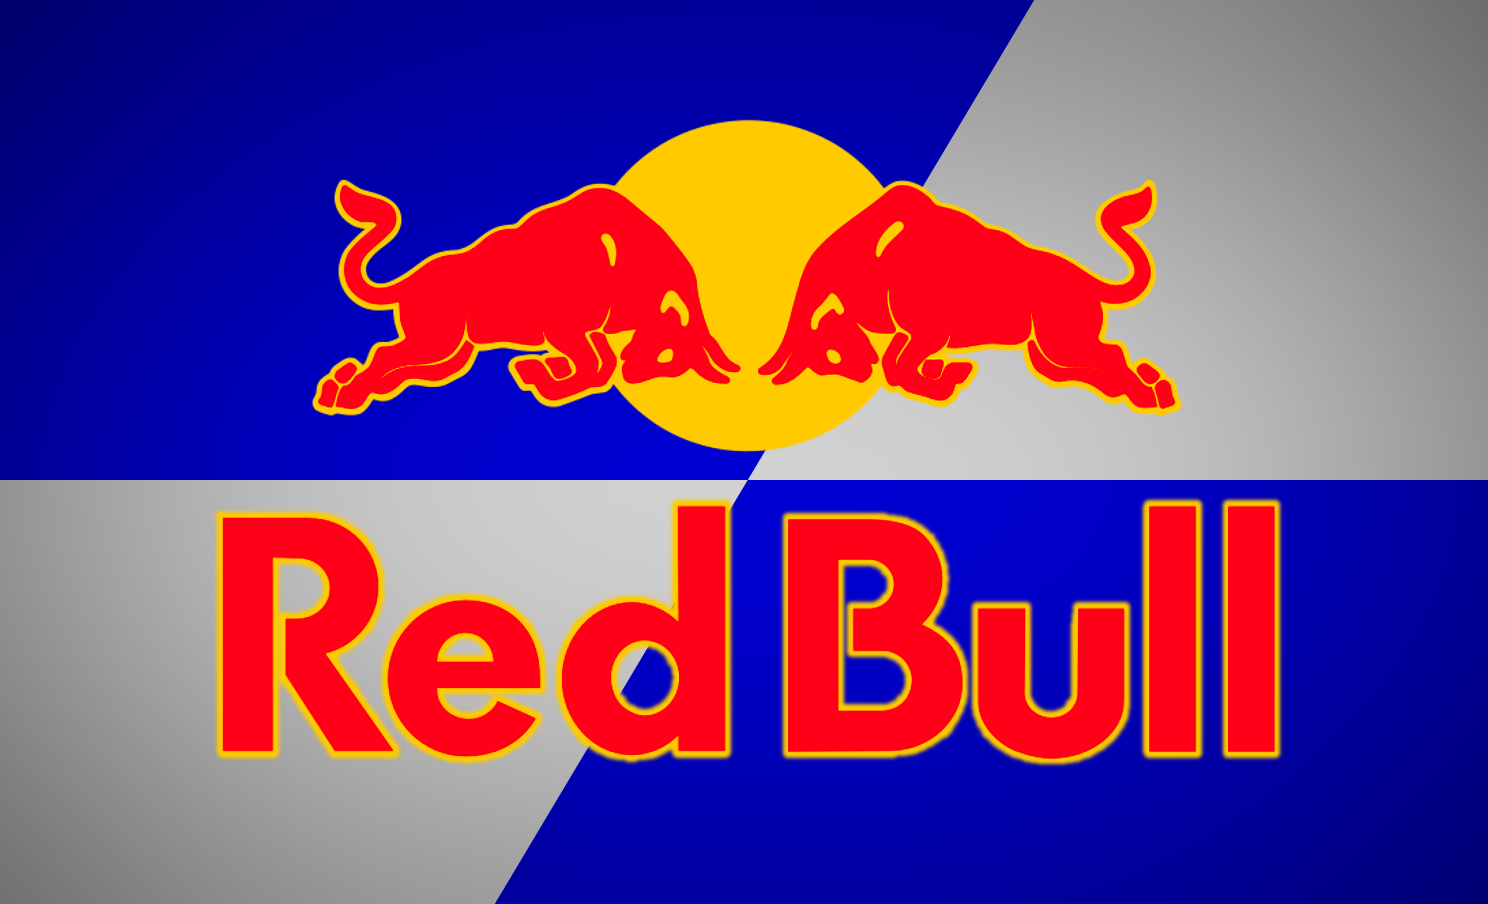 red bull logo wwwpixsharkcom images galleries with a